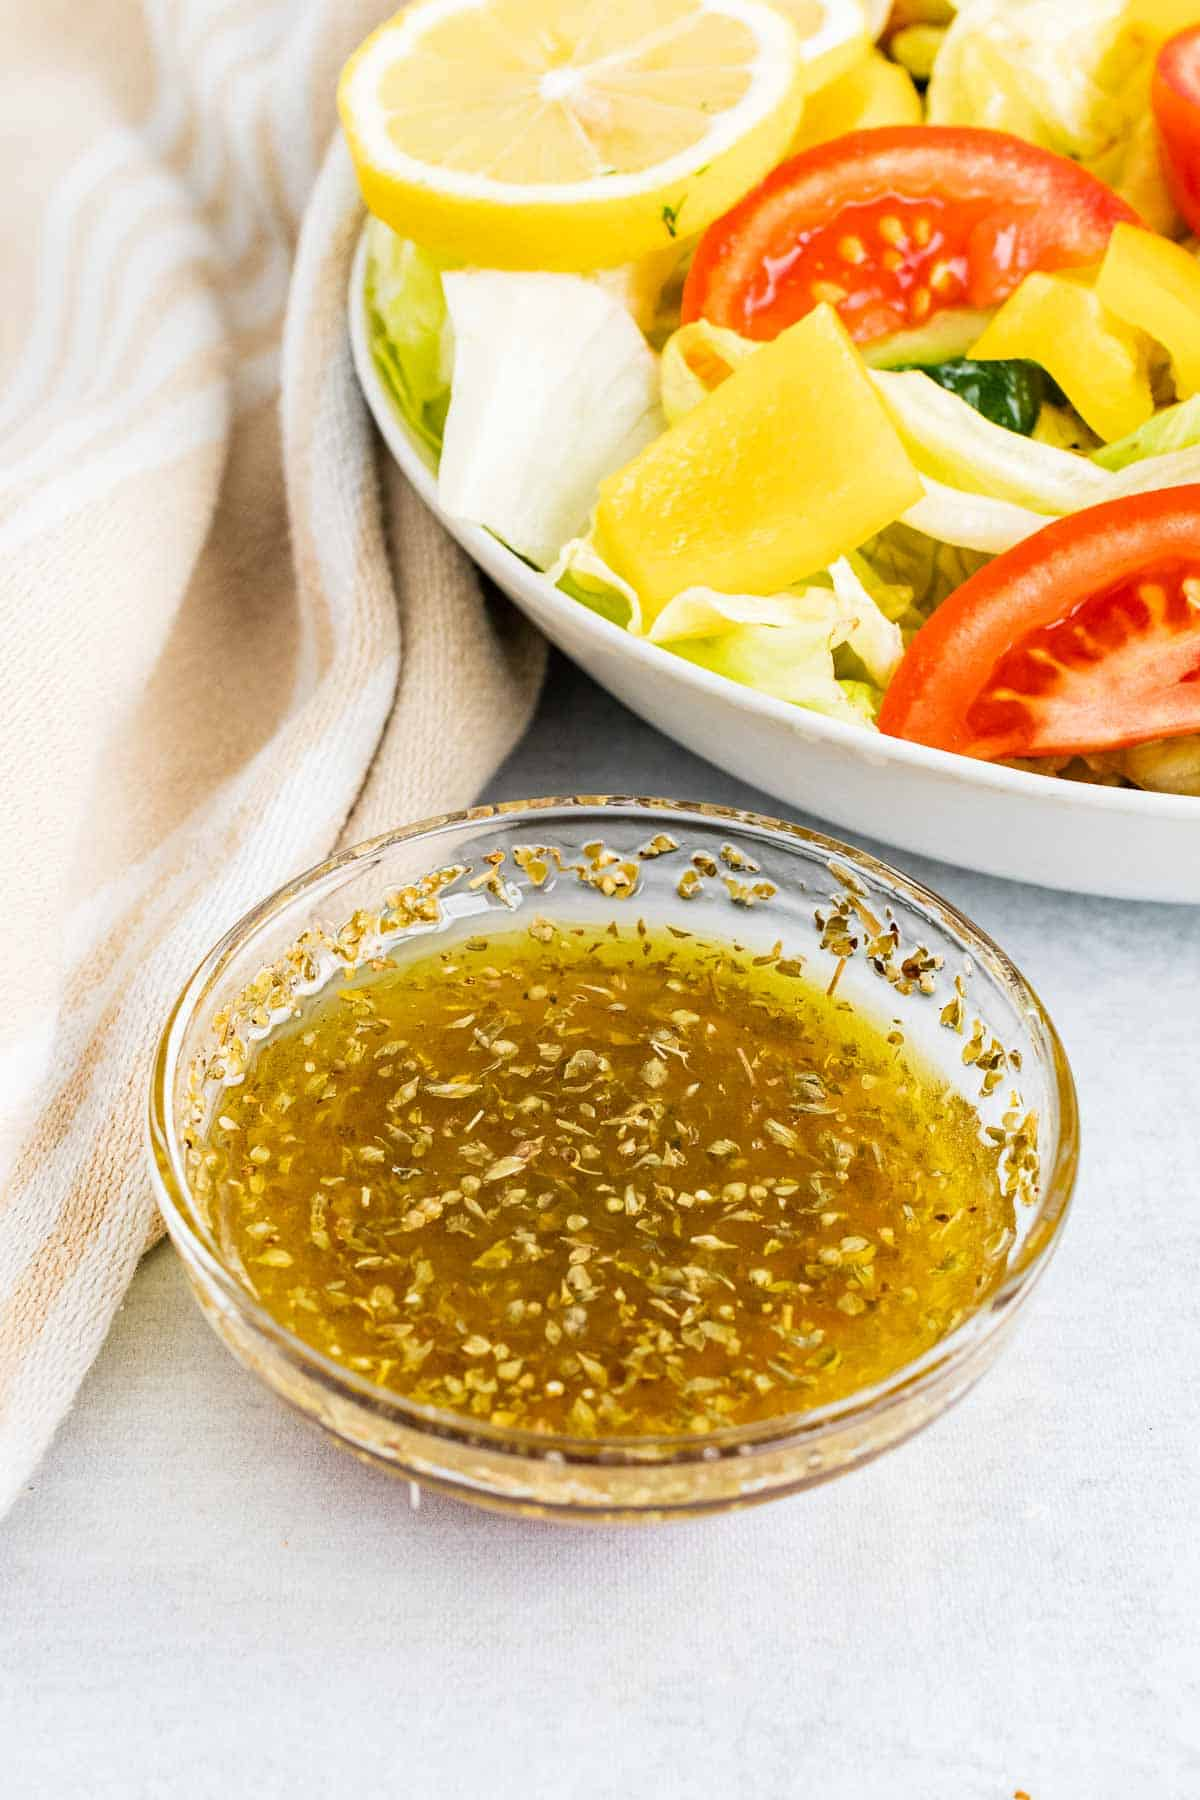 Small glass ramekin with dressing in front of salad bowl